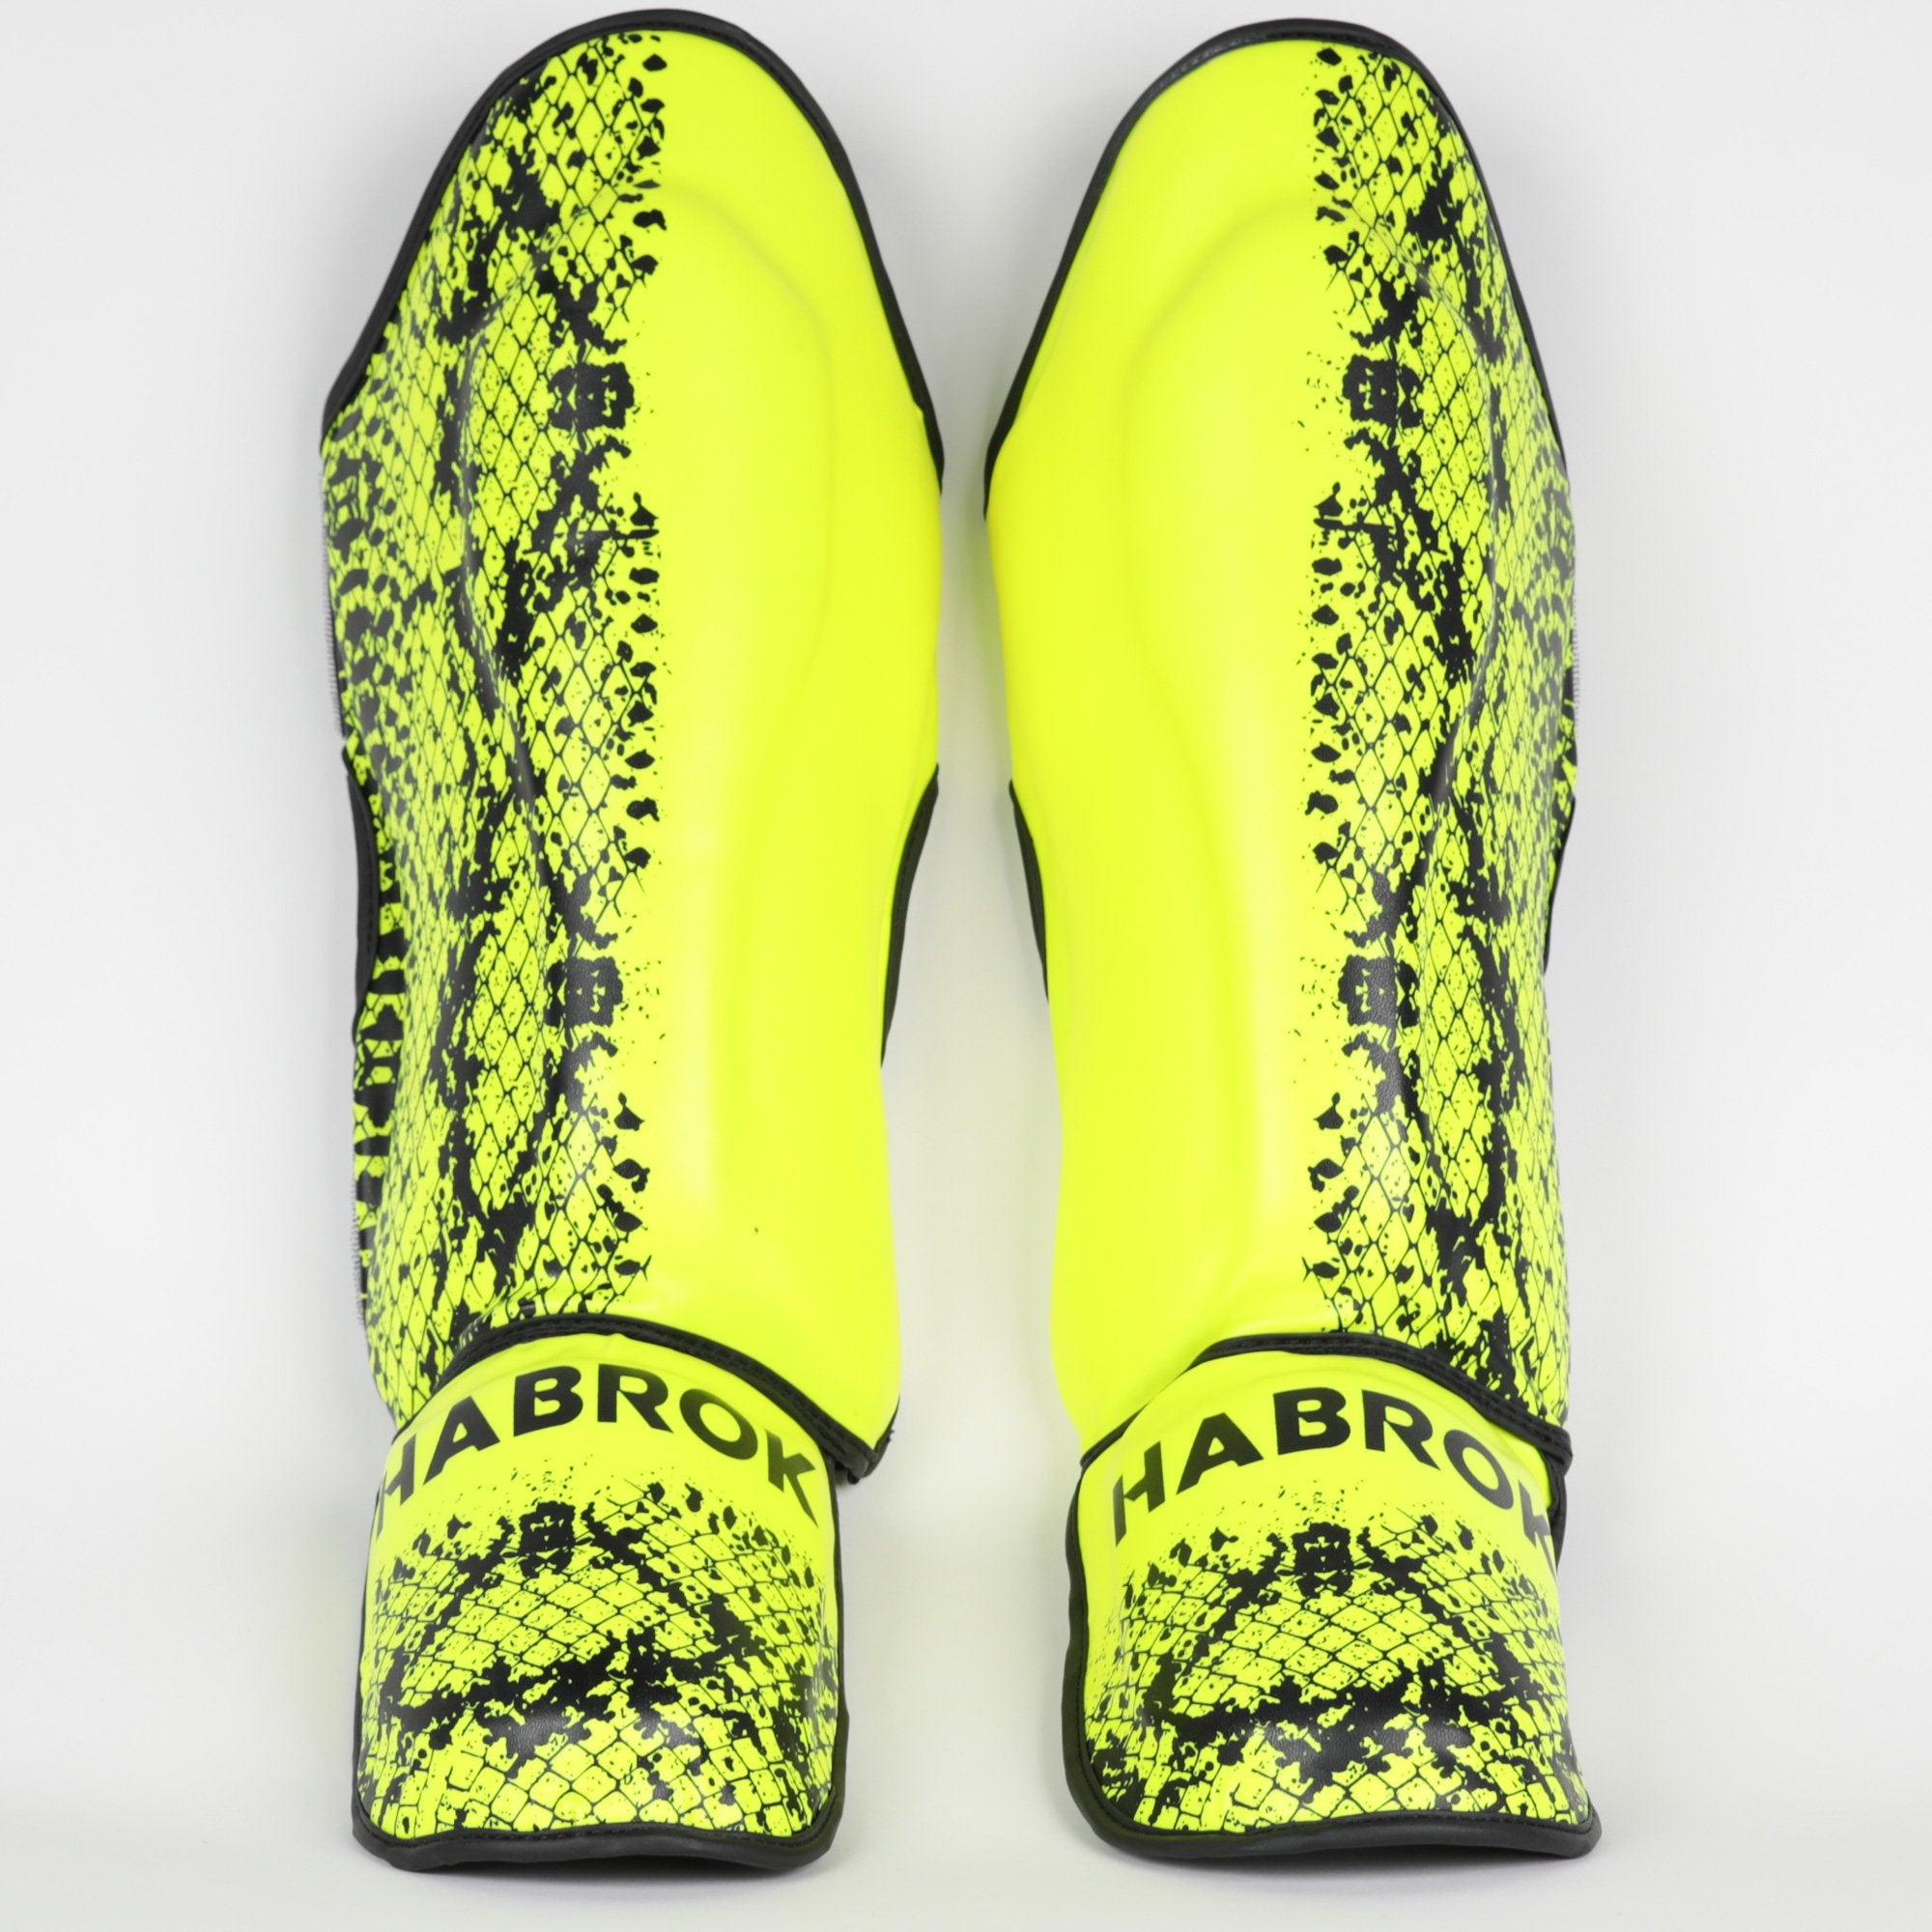 Habrok Shin Guard S / YELLOW X1 | Shin Guard | Habrok | MMA | Boxing | Muay Thai | YELLOW